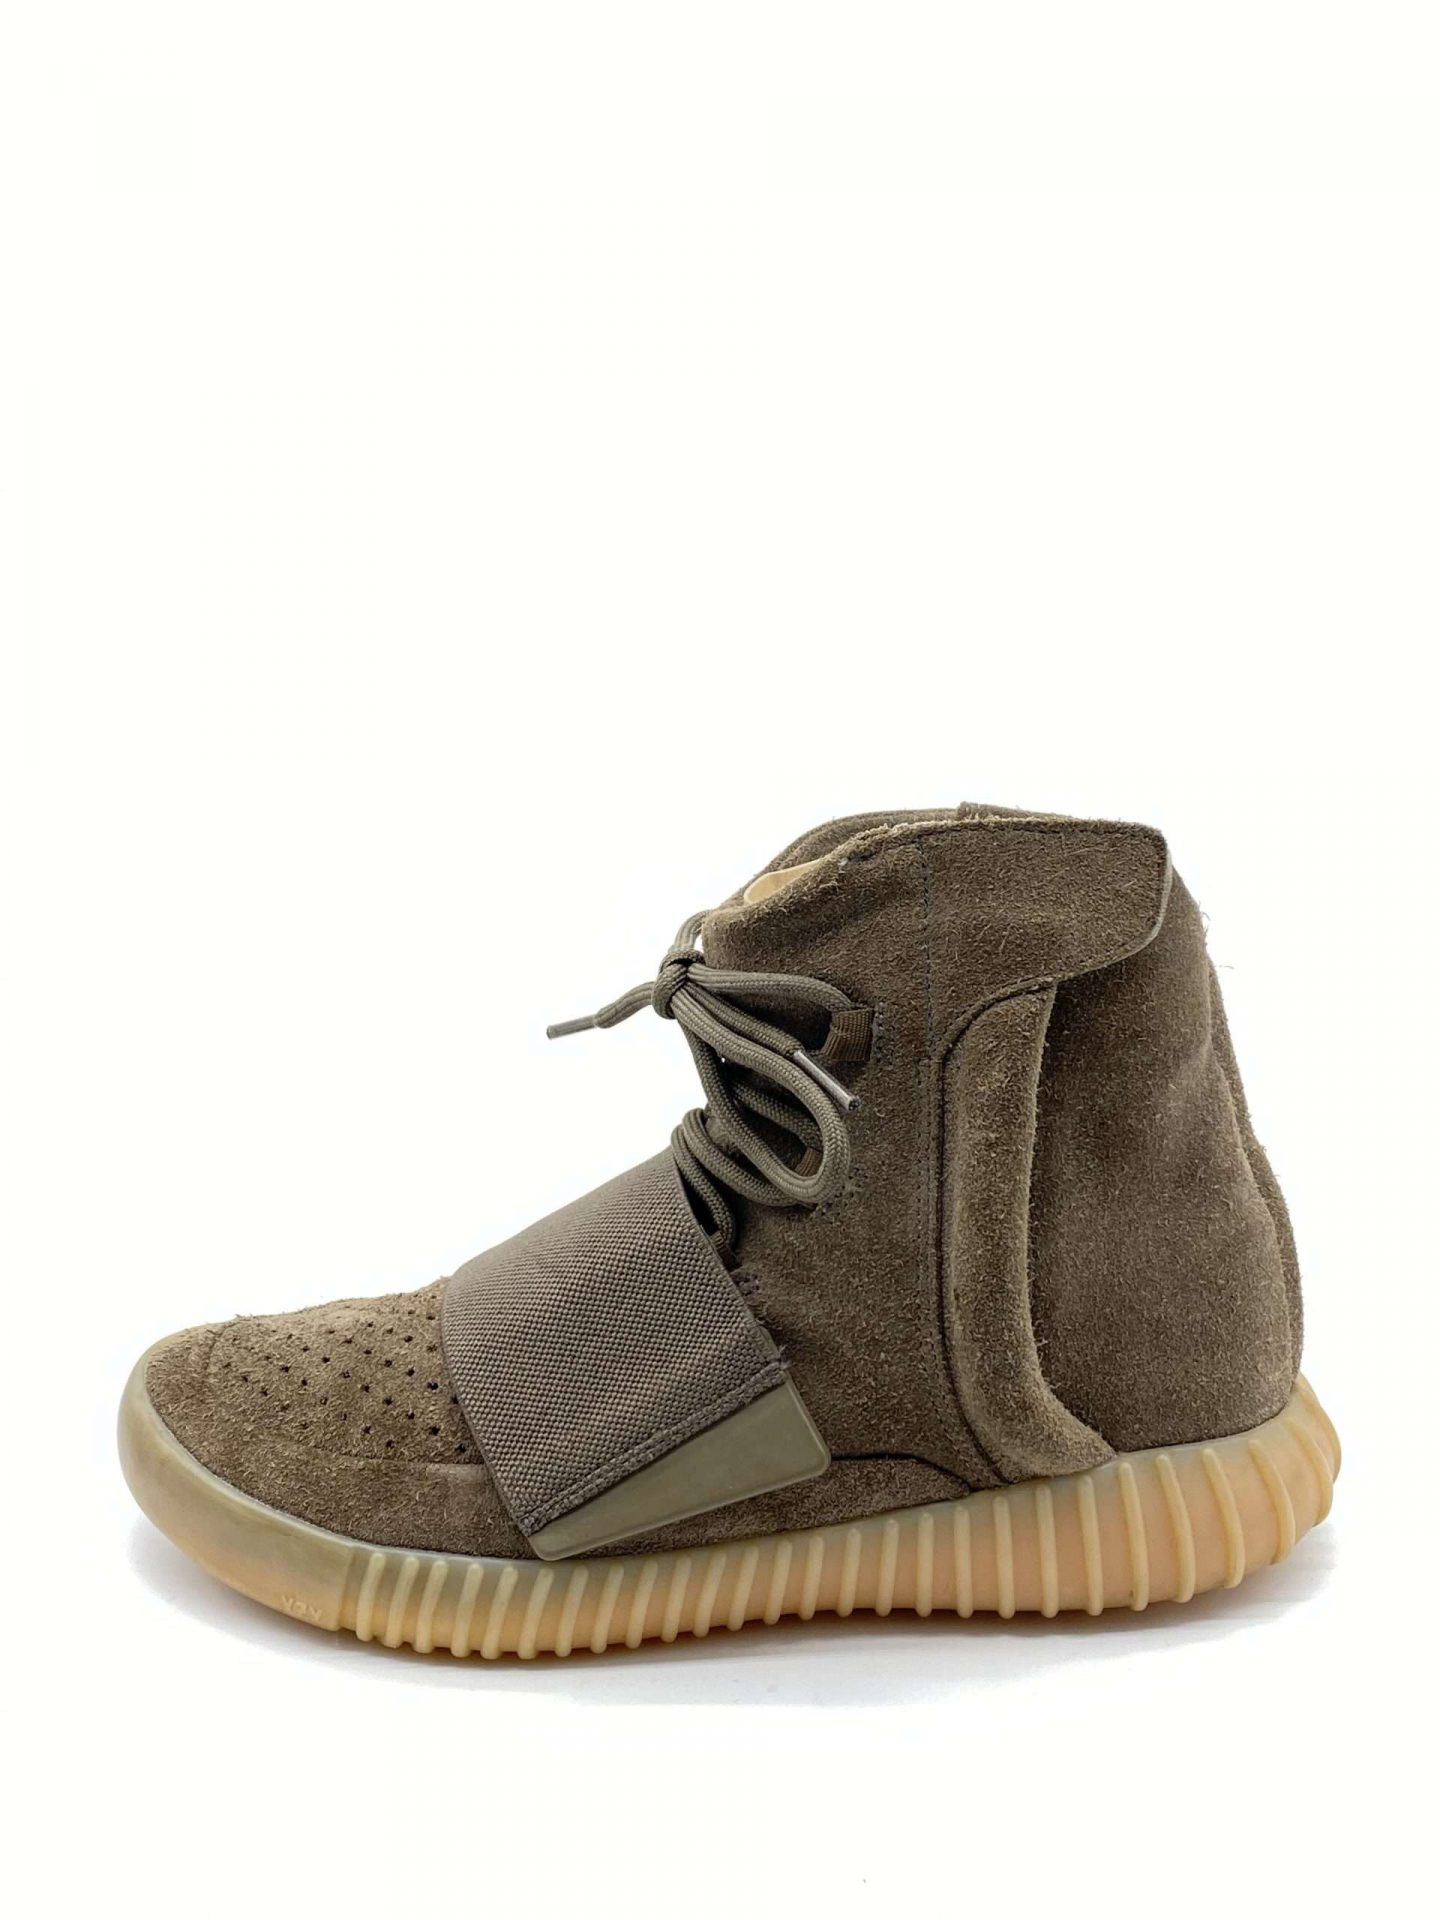 "Yeezy Boost 750 ""Light Brown"""